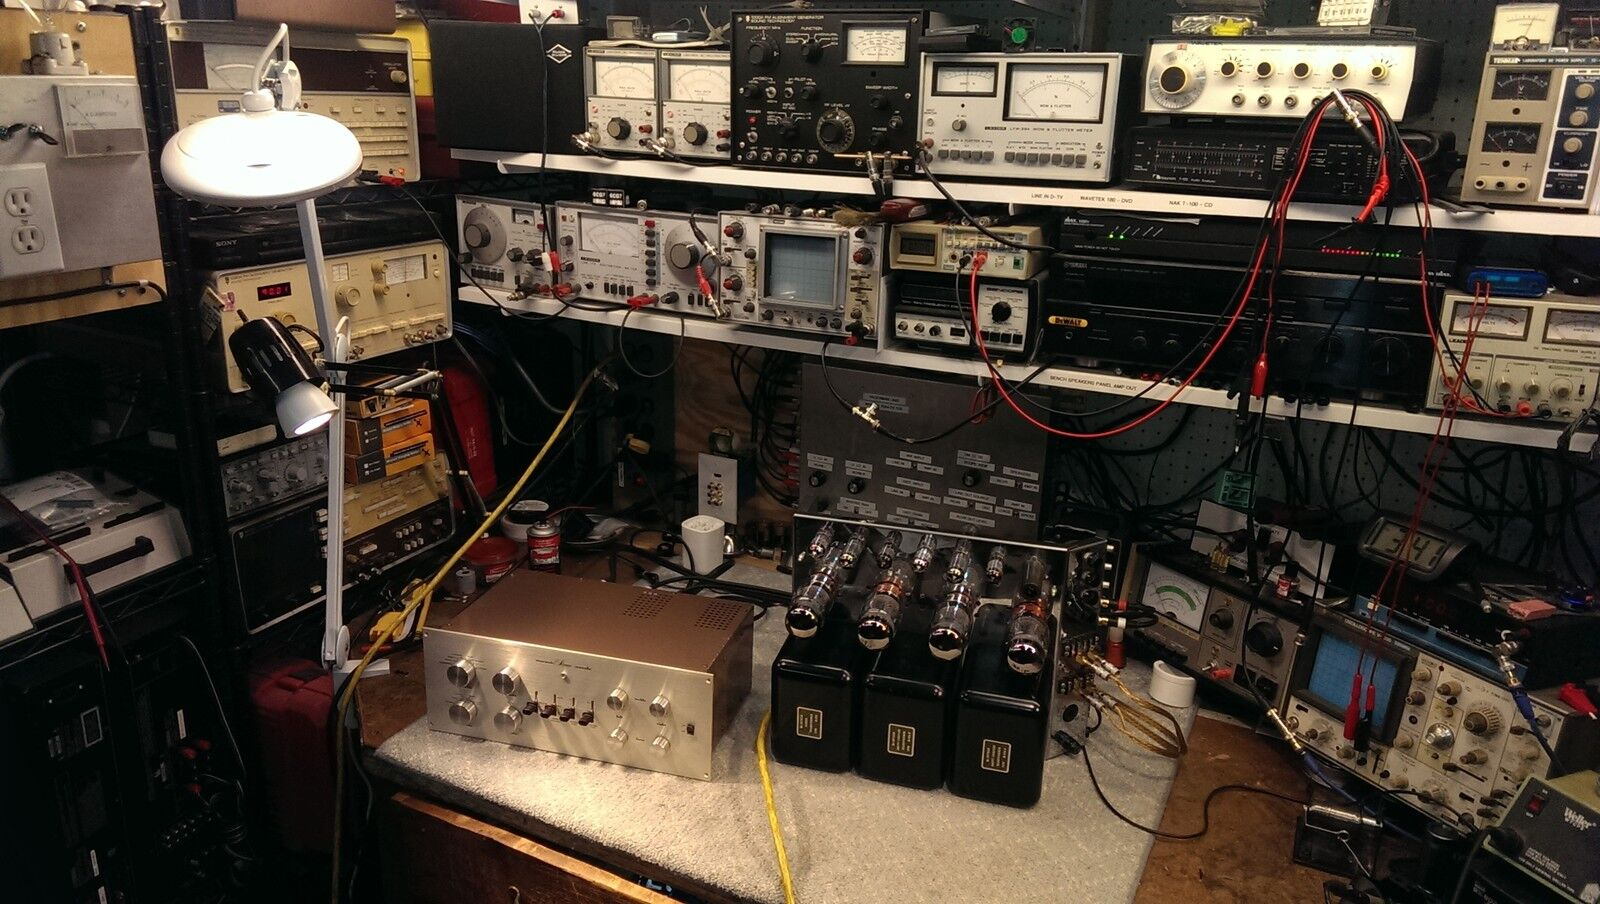 The Electronic Workshop